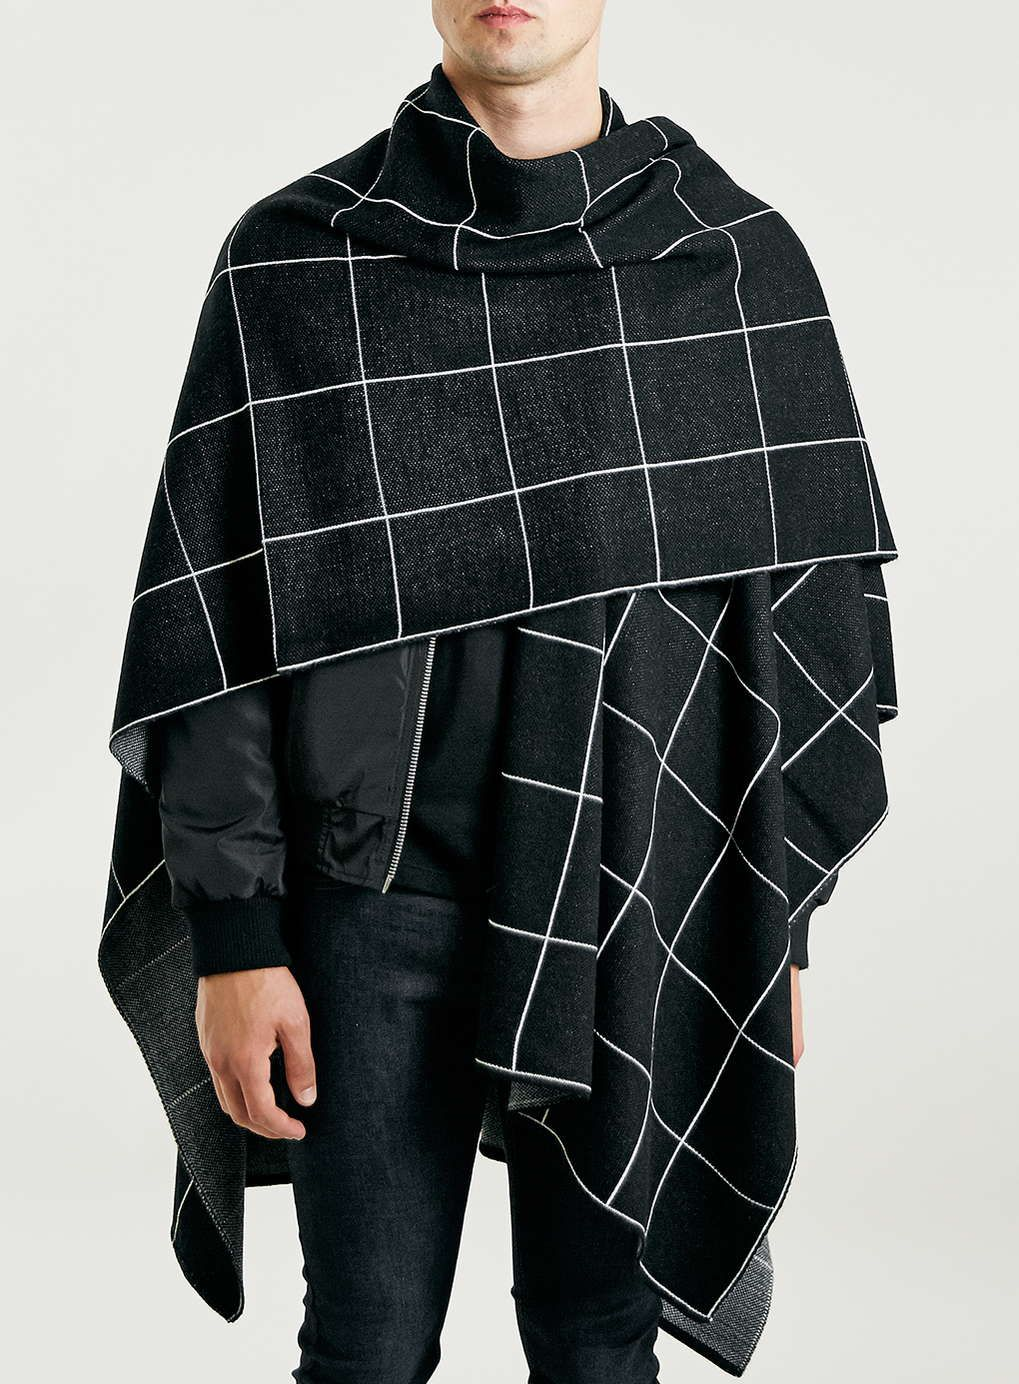 Black Windowpane Check Knitted Cape | Male fashion and Man style